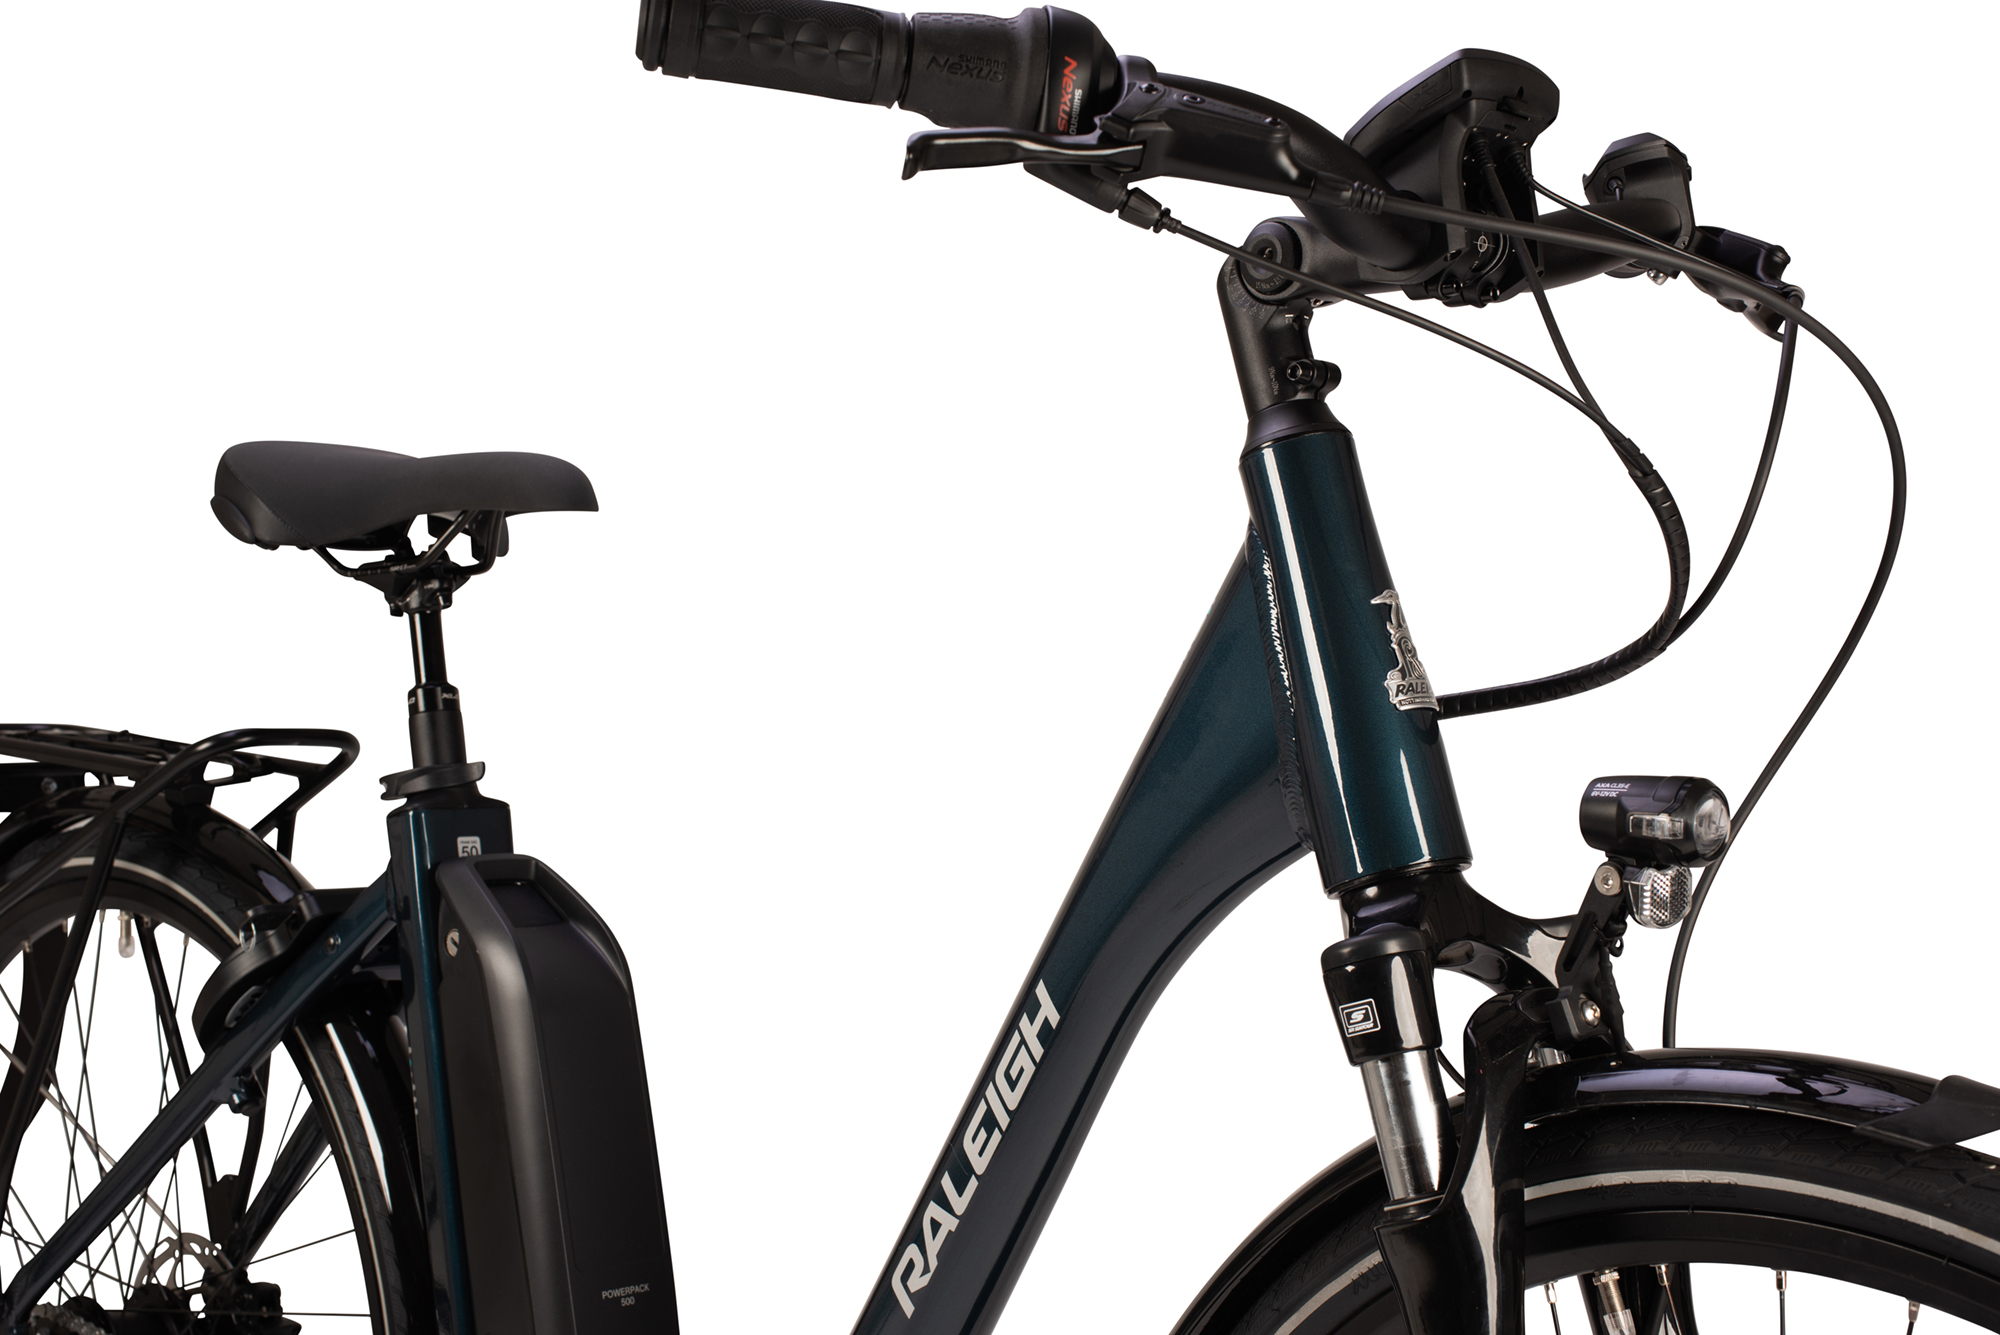 Handlebars and front forks on the Raleigh Motus Grand Tour low step electric bike